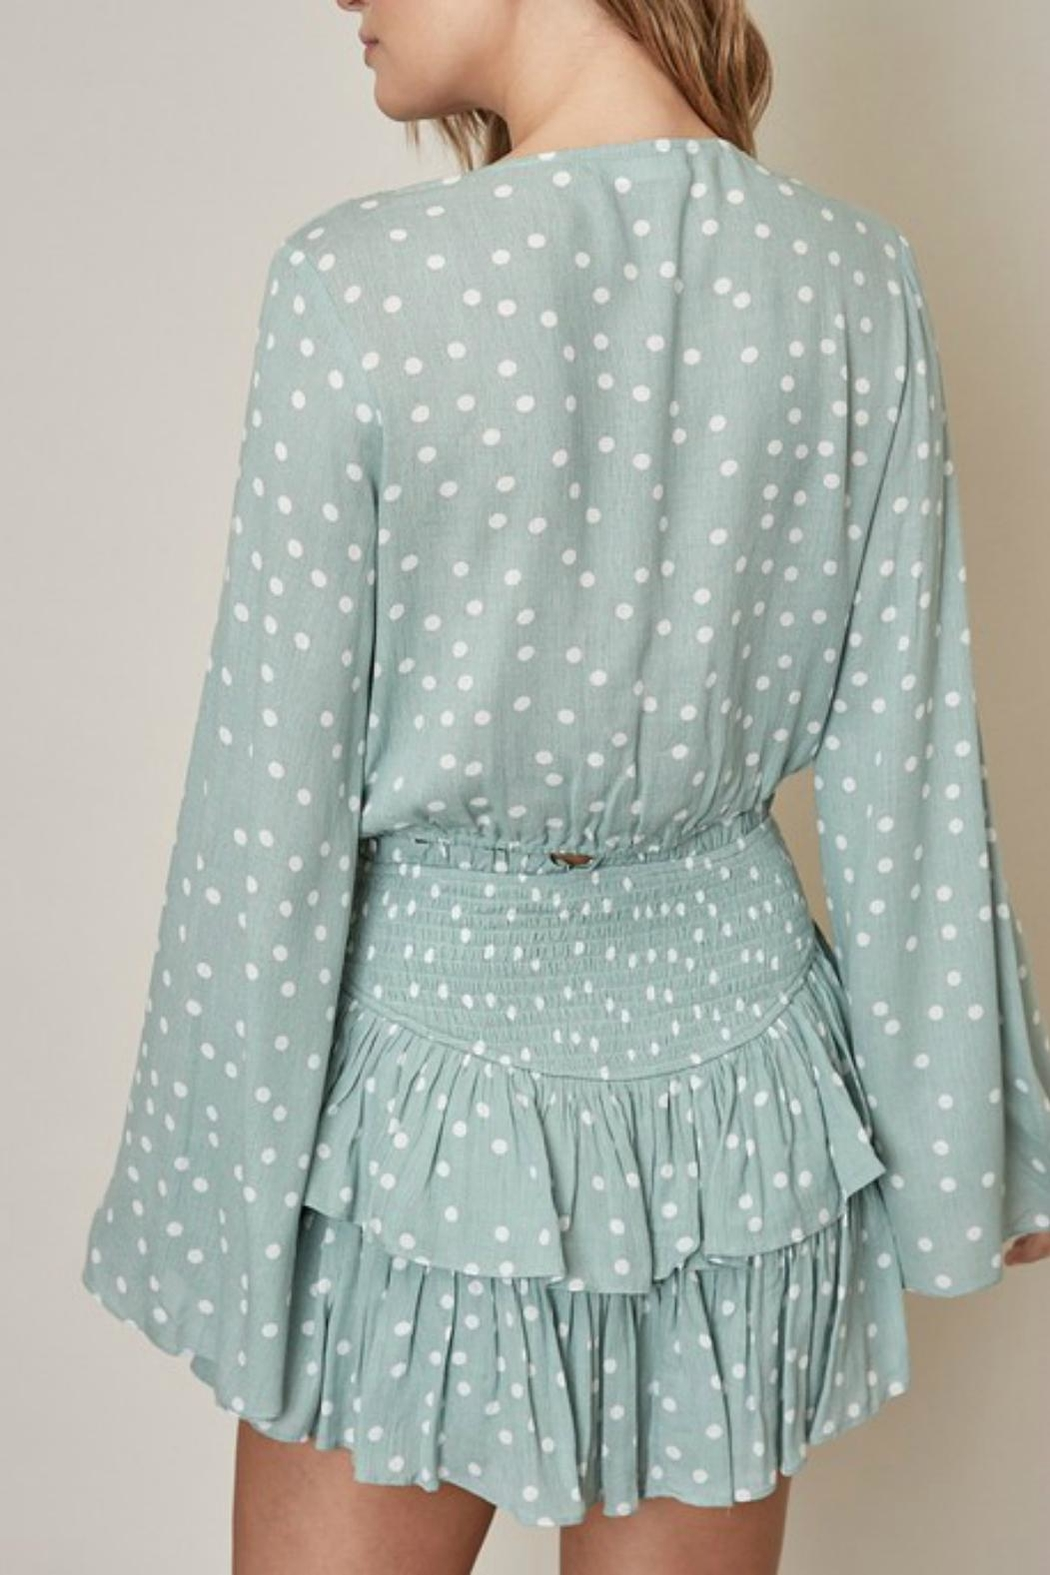 Pretty Little Things Polka Dot Skort - Side Cropped Image